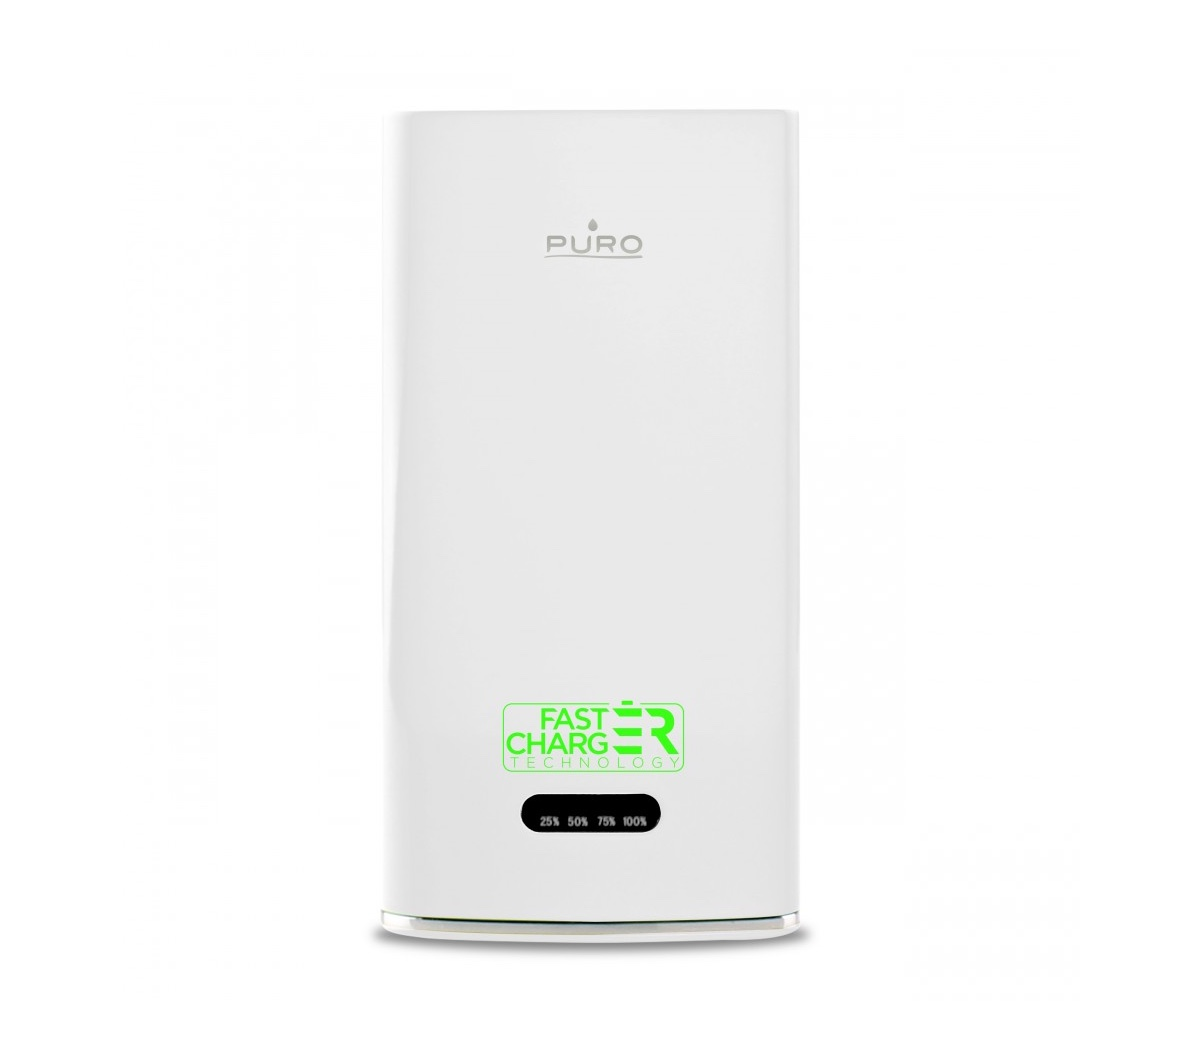 puro power bank fast charge 1200 ok